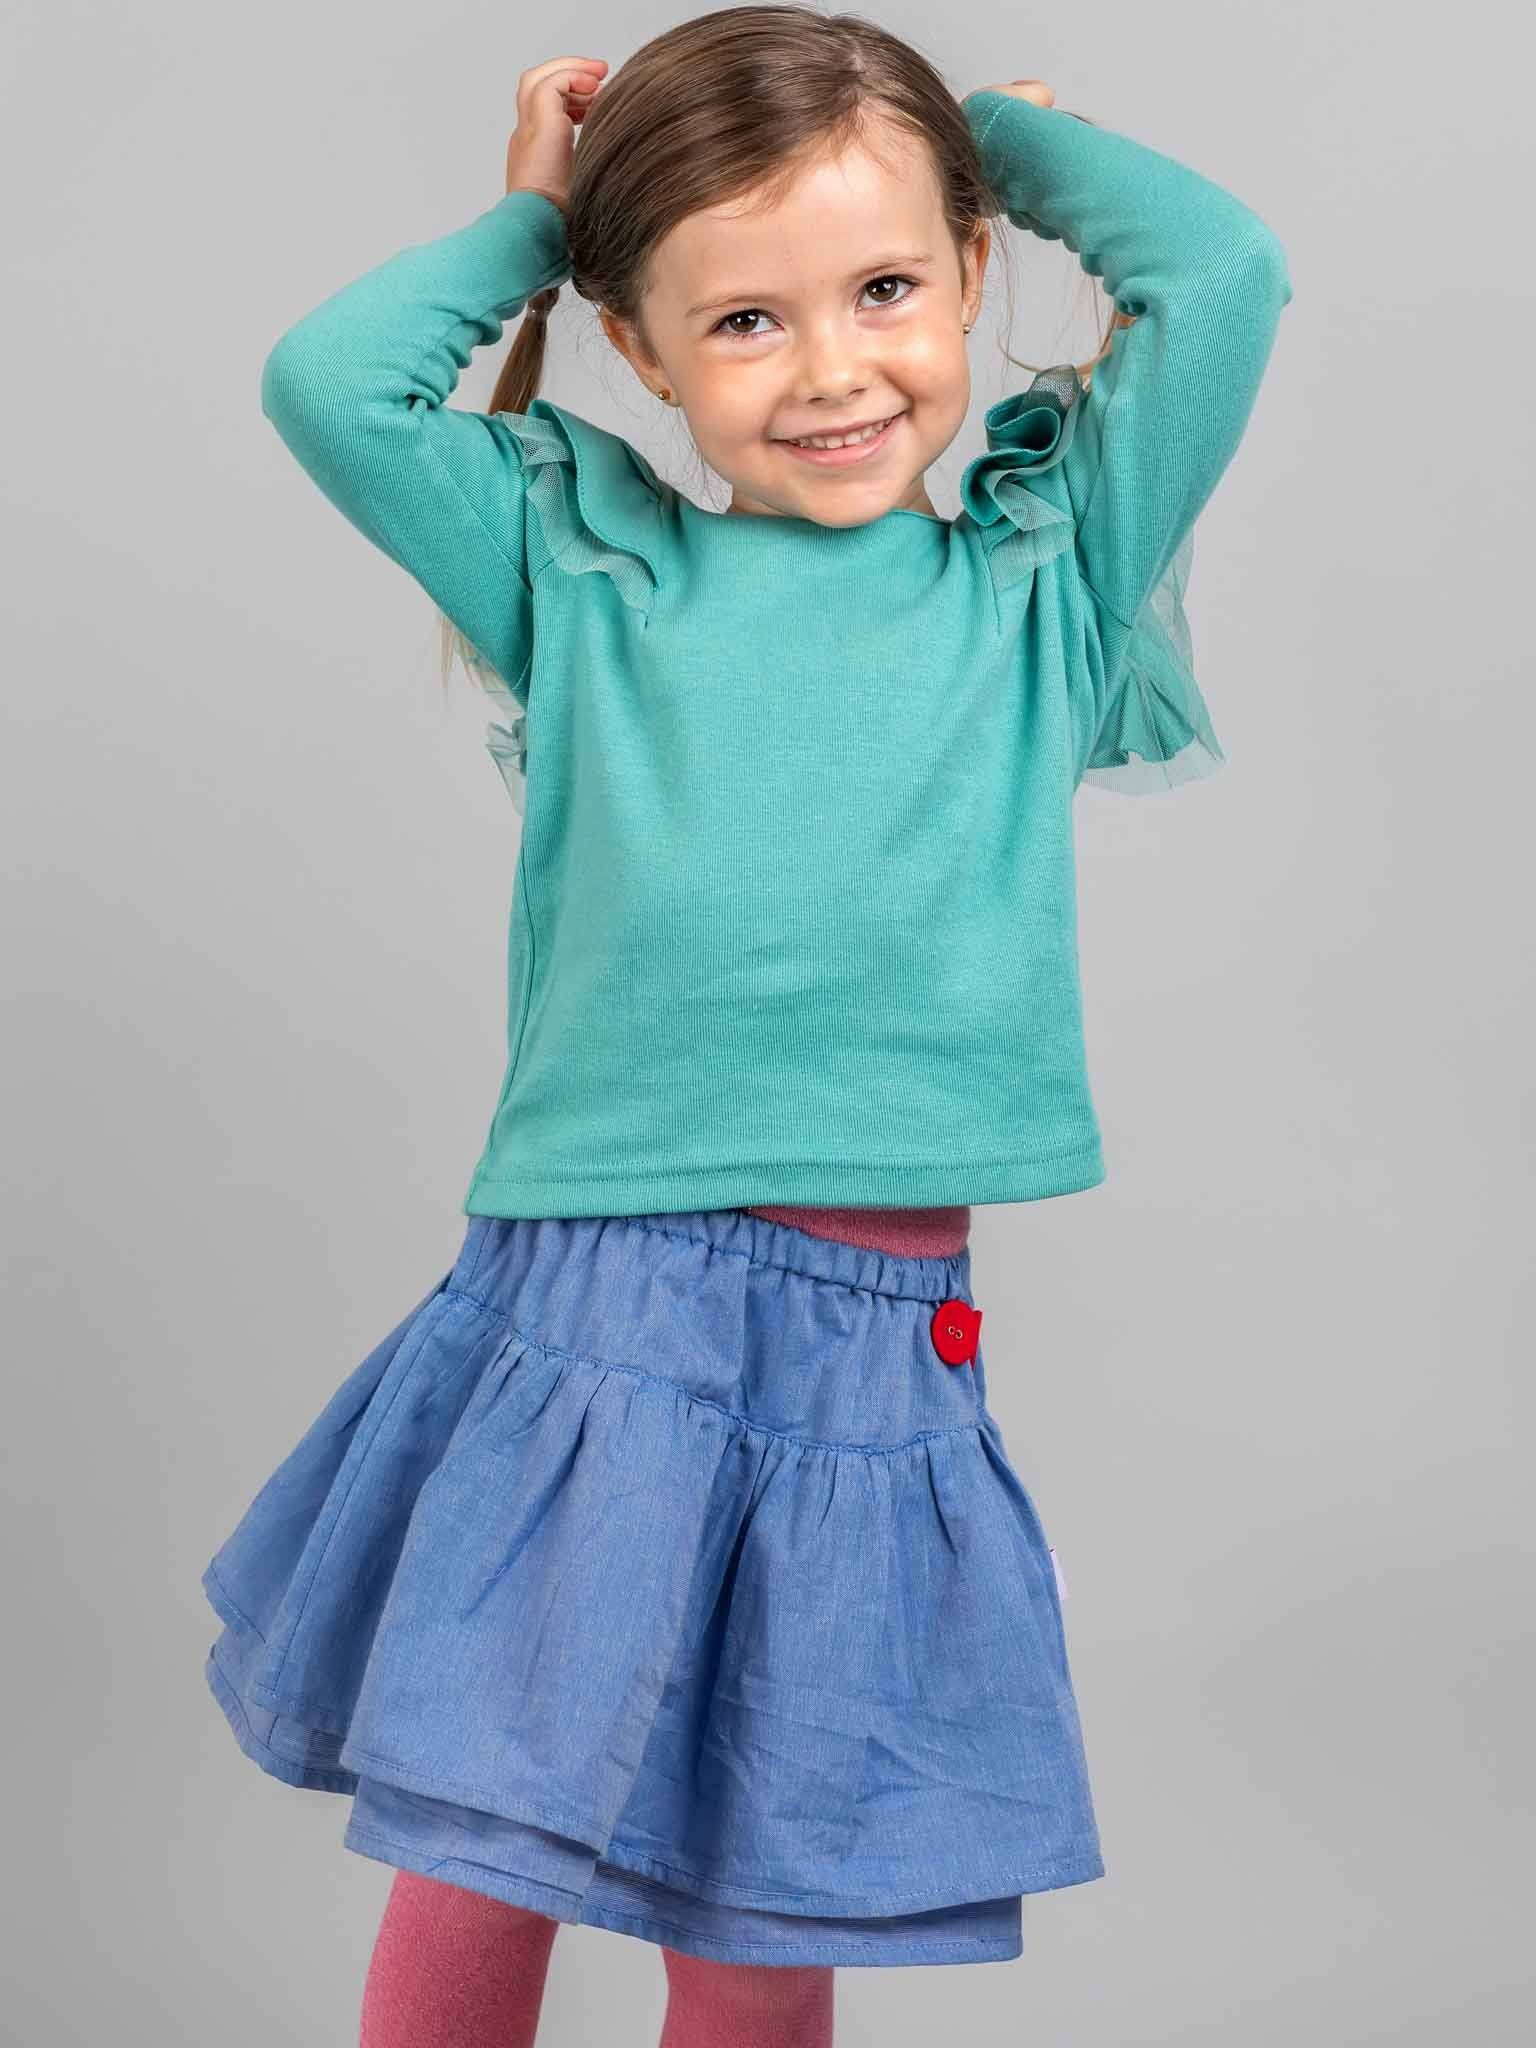 Sweetheart Long Sleeved Tee Teal, Tops - Oobi Girls Kid Fashion